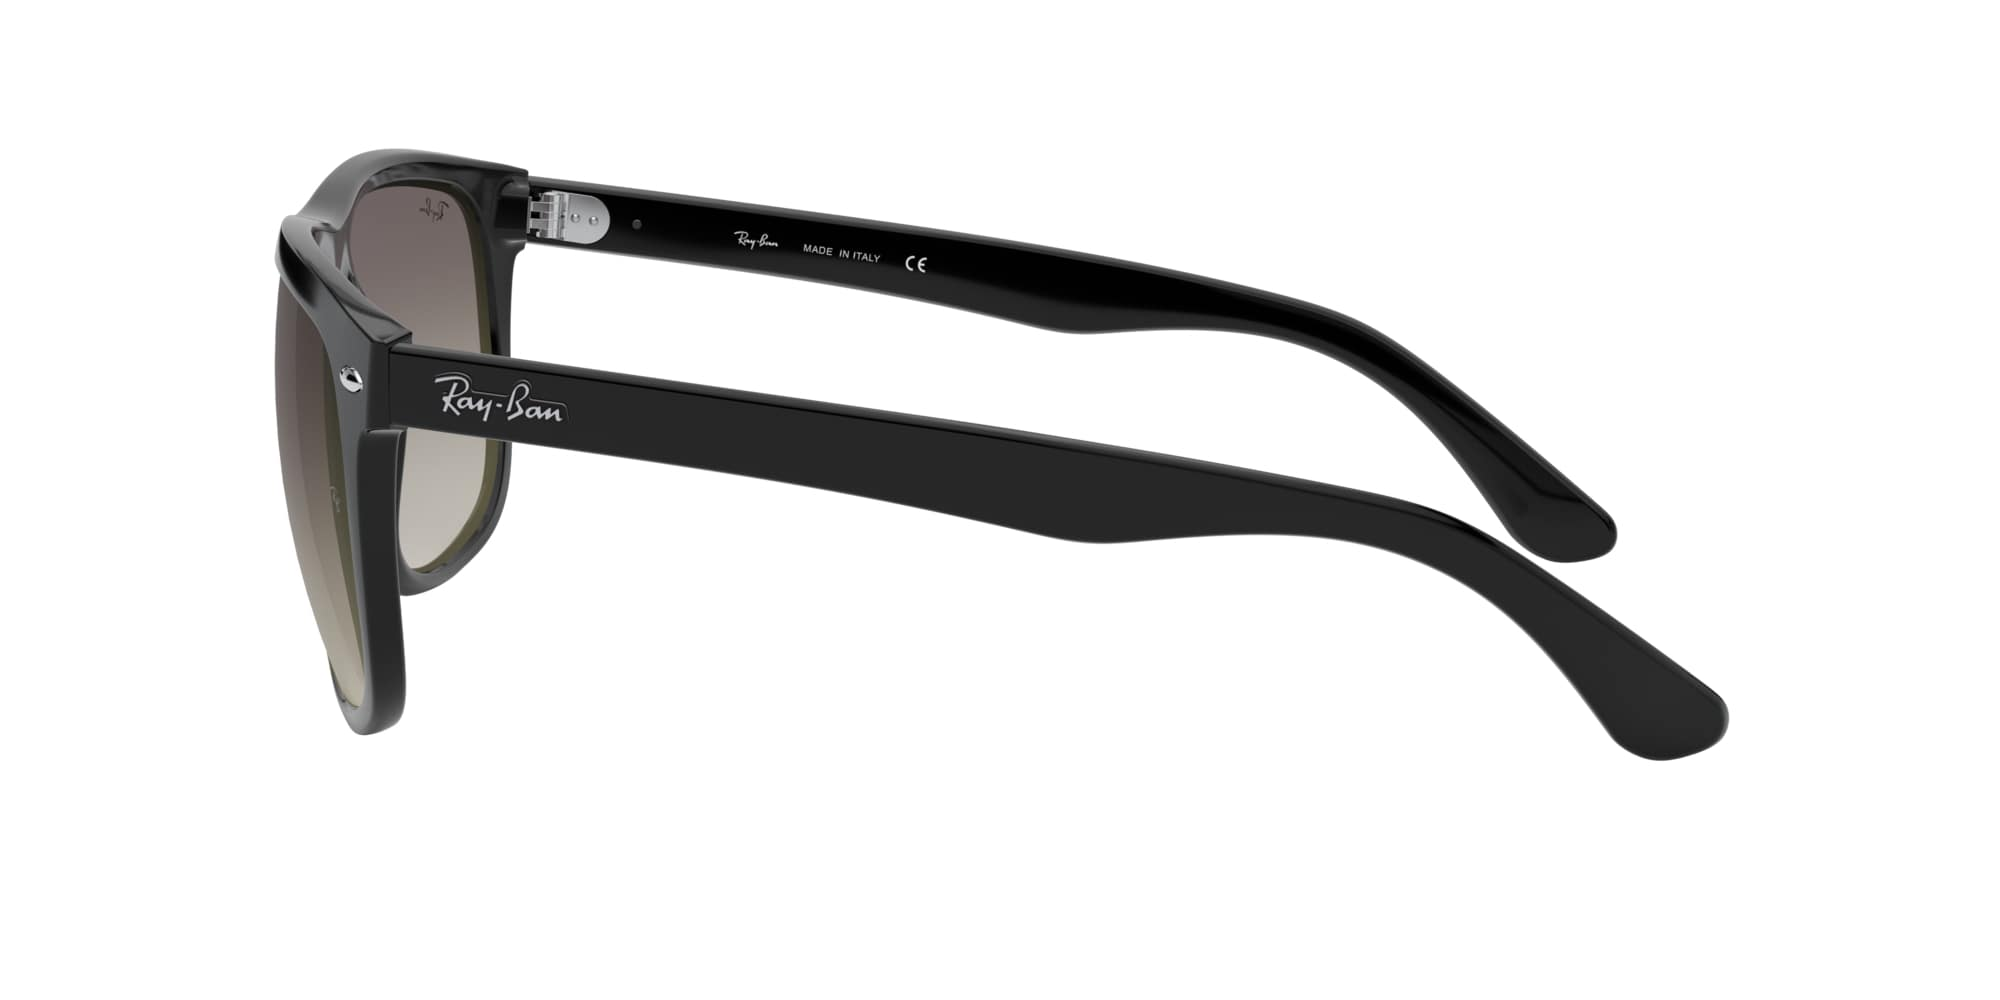 Ray Ban RB4147 solbriller, black/green classic